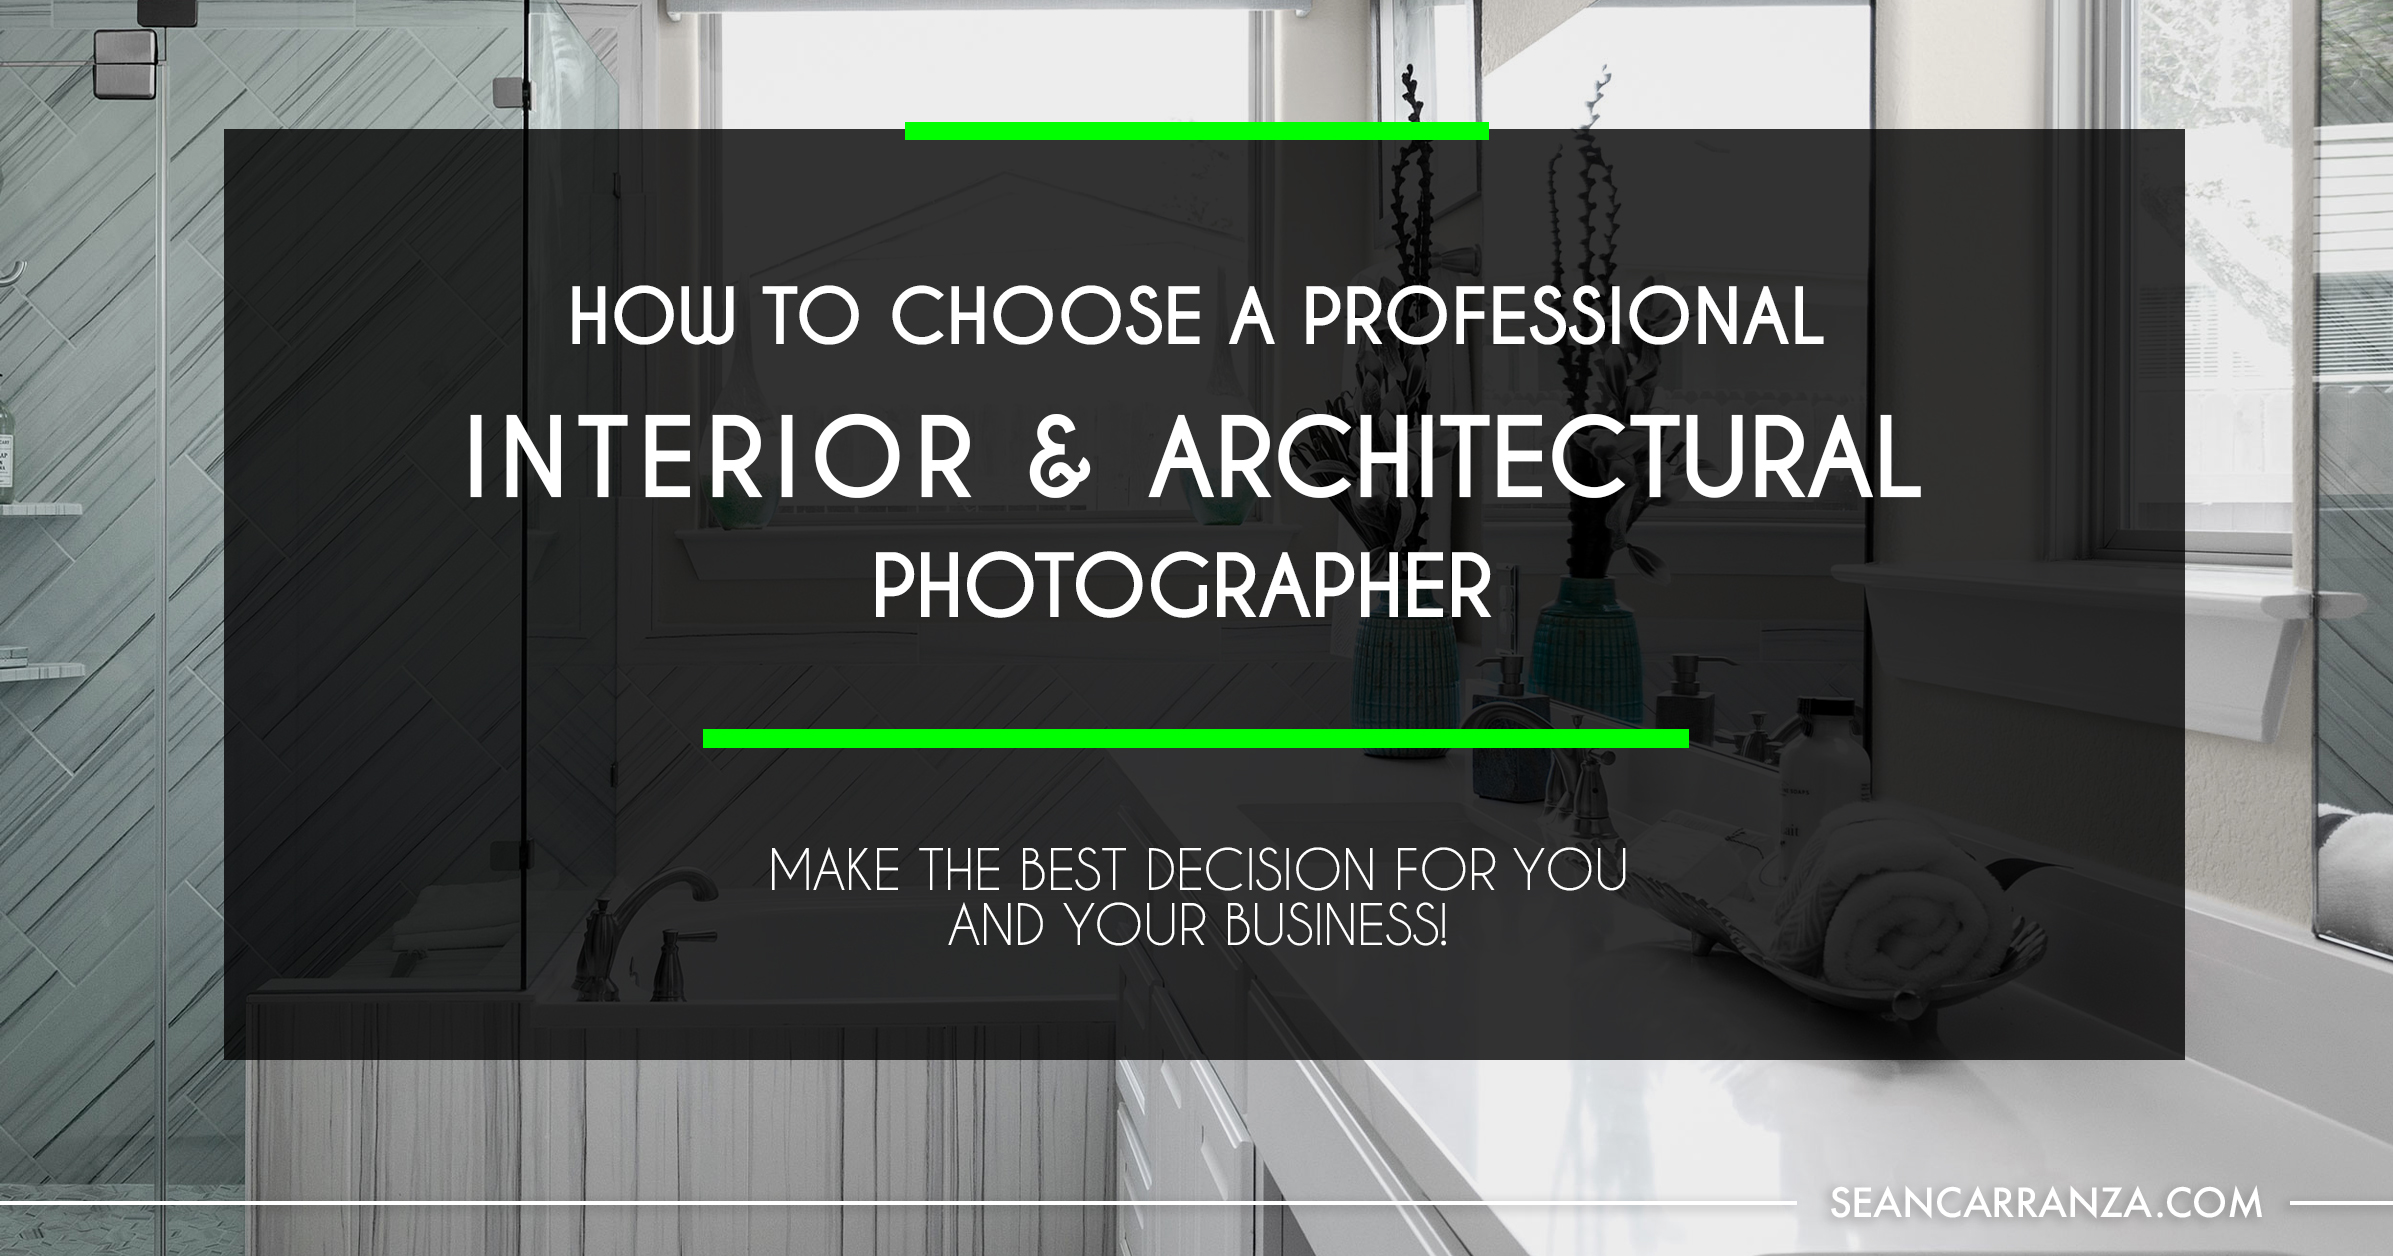 How-to-Choose-a-Professional-Interior-Architectural-Photographer-Header.jpg